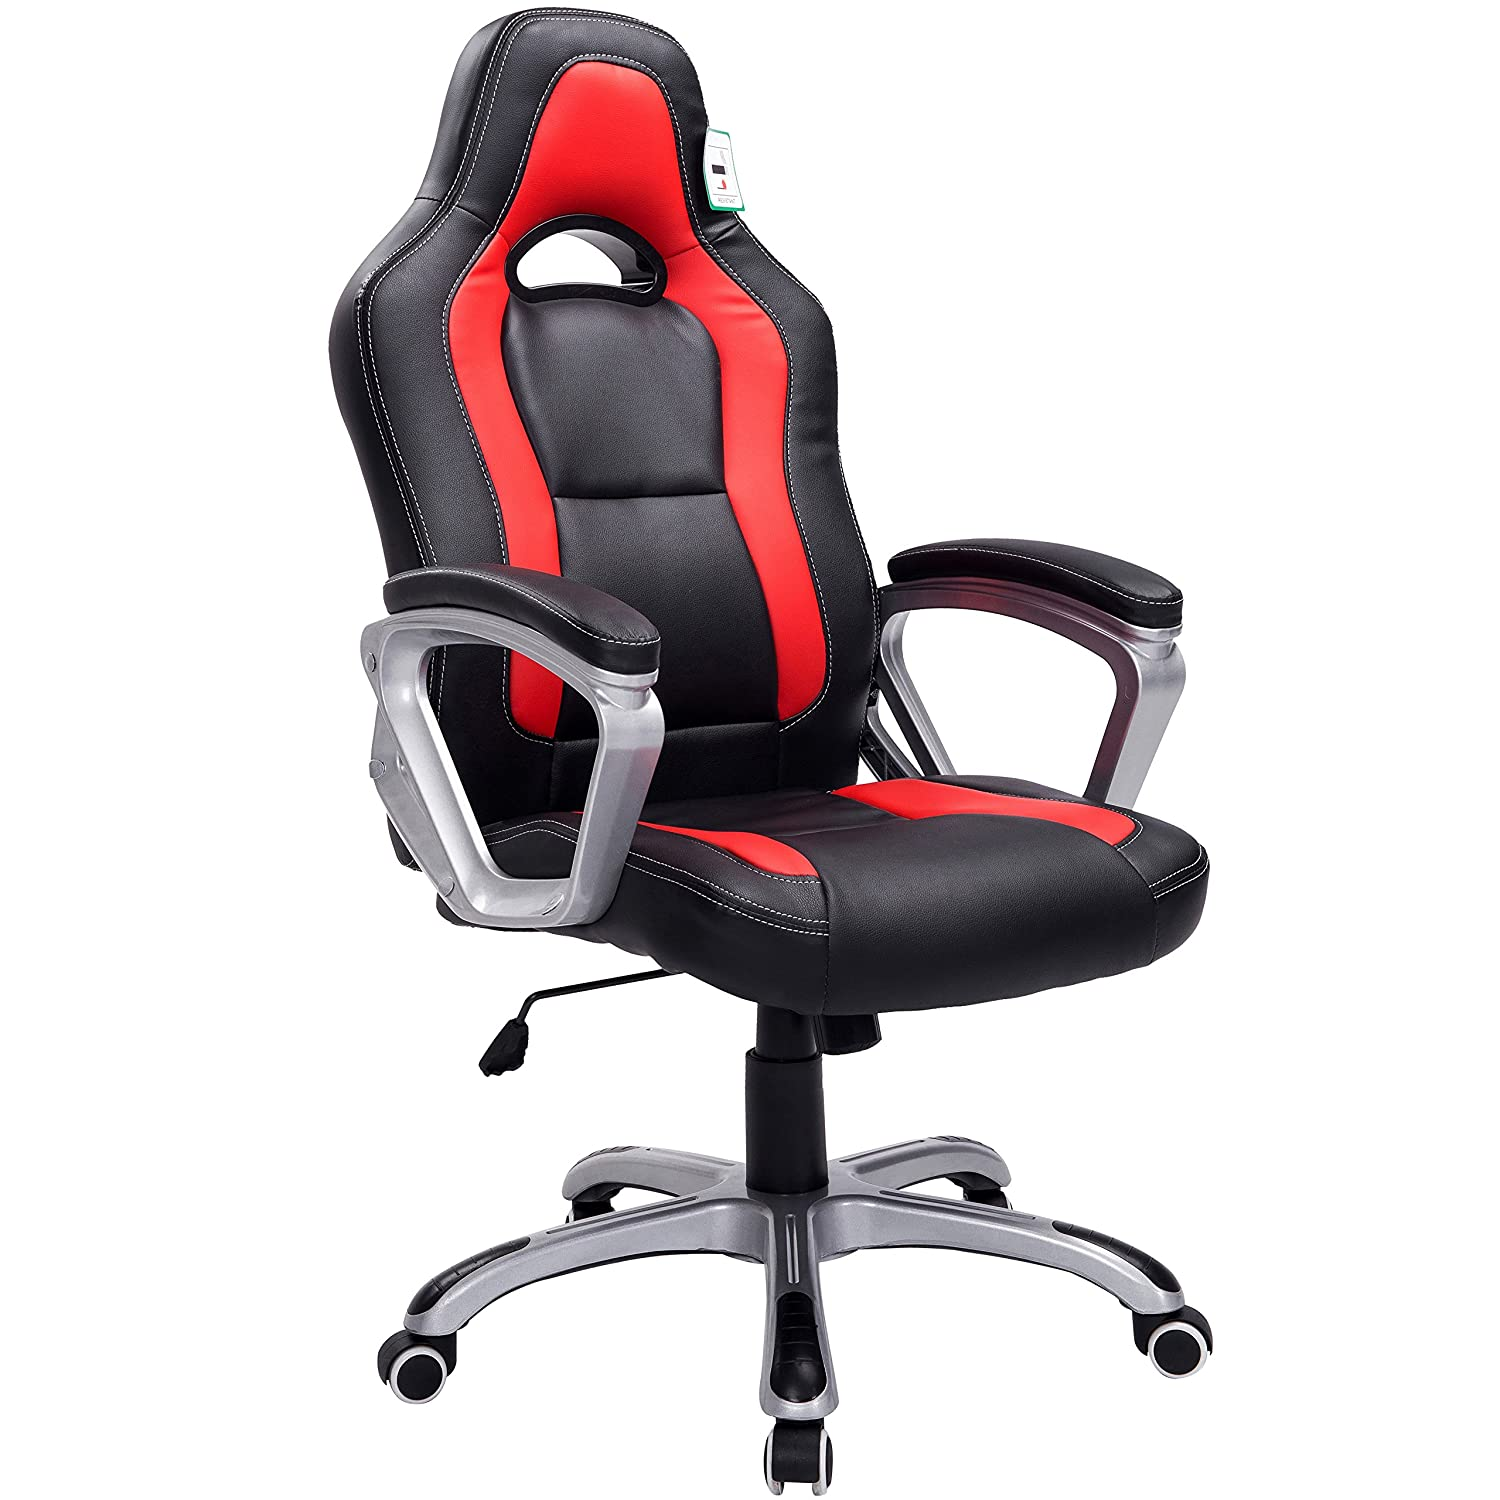 Remarkable Cherry Tree Furniture Brand New Designed Racing Sport Swivel Office Chair Computer Desk Chair In Black Red Colour Machost Co Dining Chair Design Ideas Machostcouk